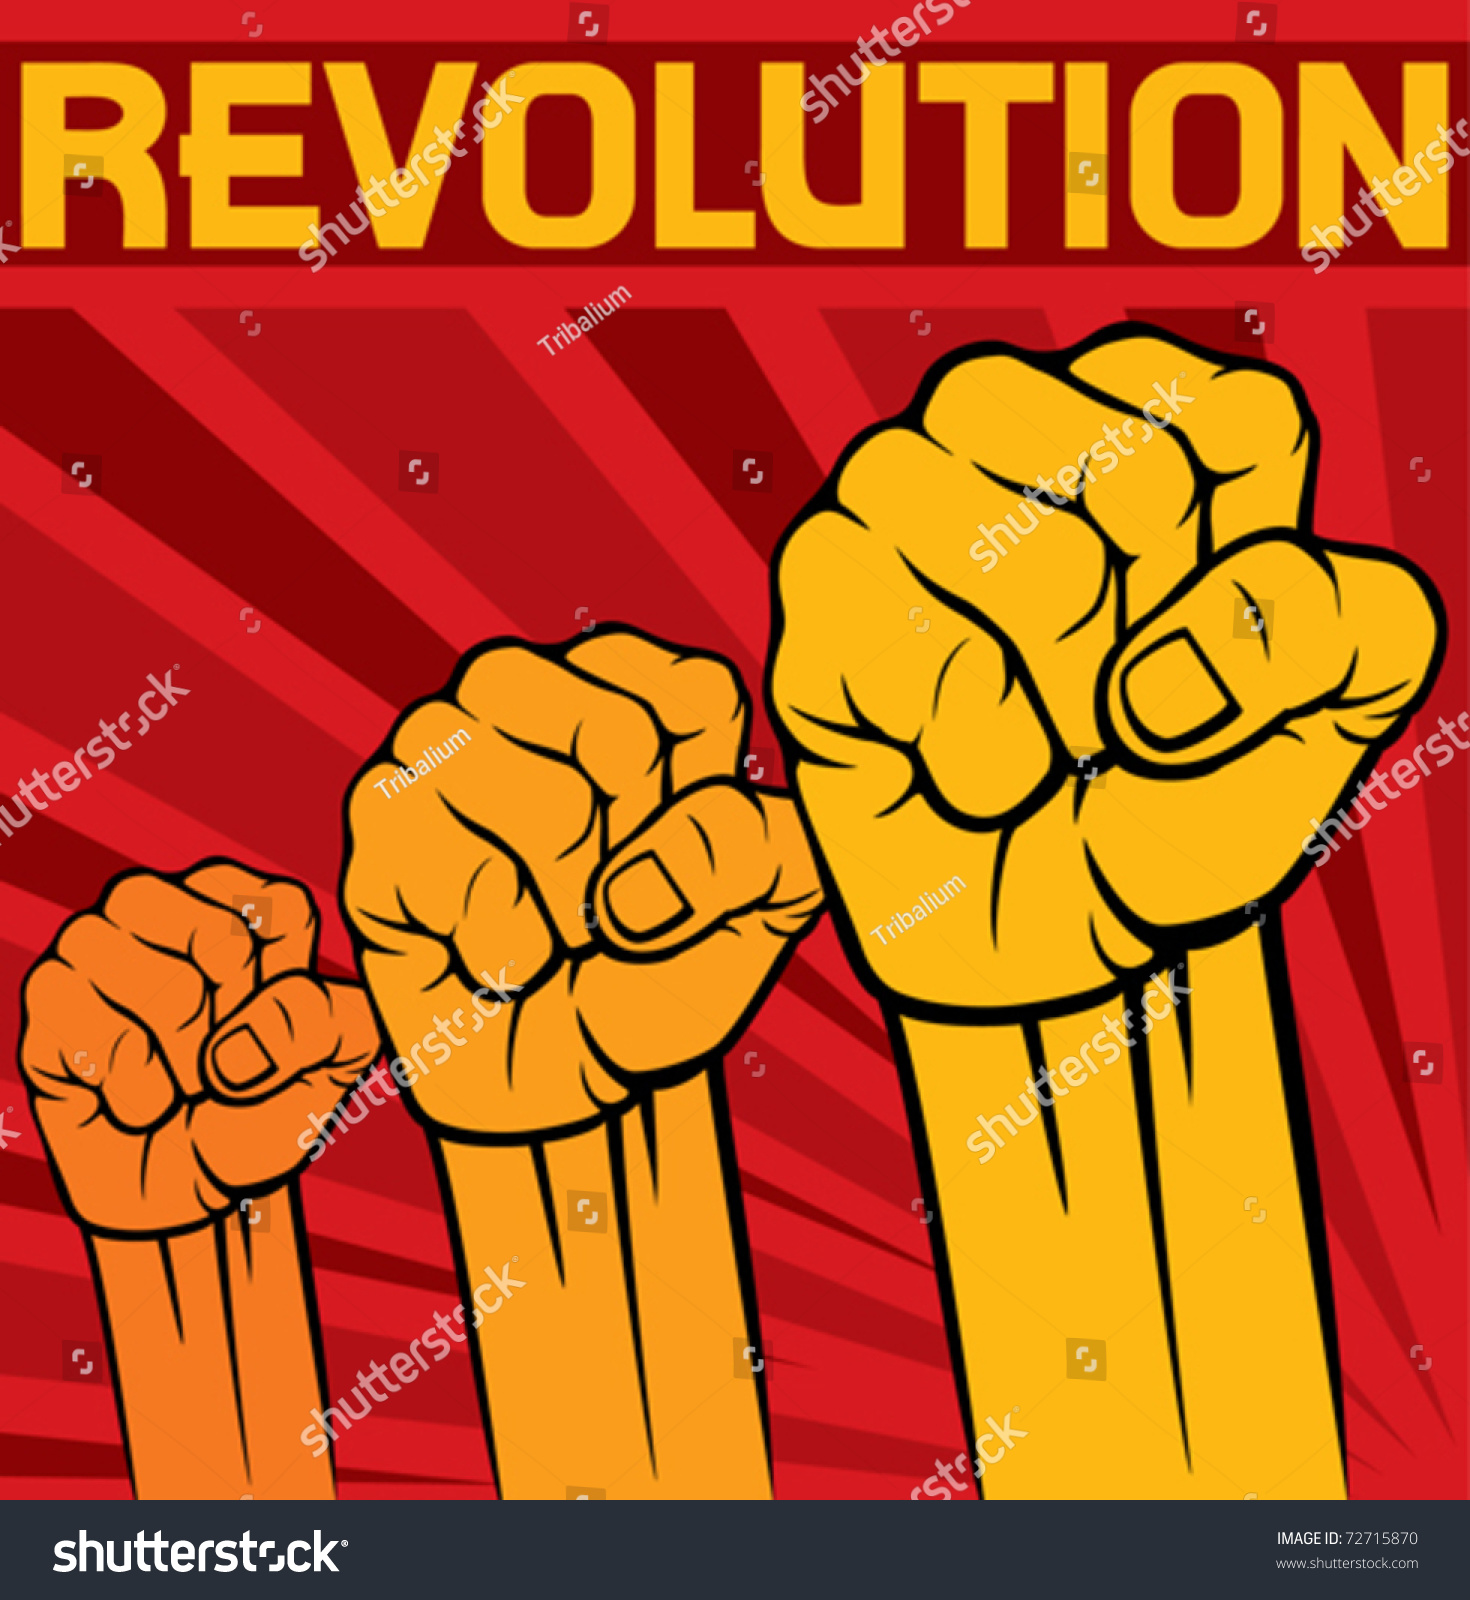 animal farm and the industrial revolution The industrial revolution (1830s - 1880s) 2 the digital revolution (1970s - 2000s) 3 summarize old major's message to the animals of animal farm 5 animal farm by george orwell.